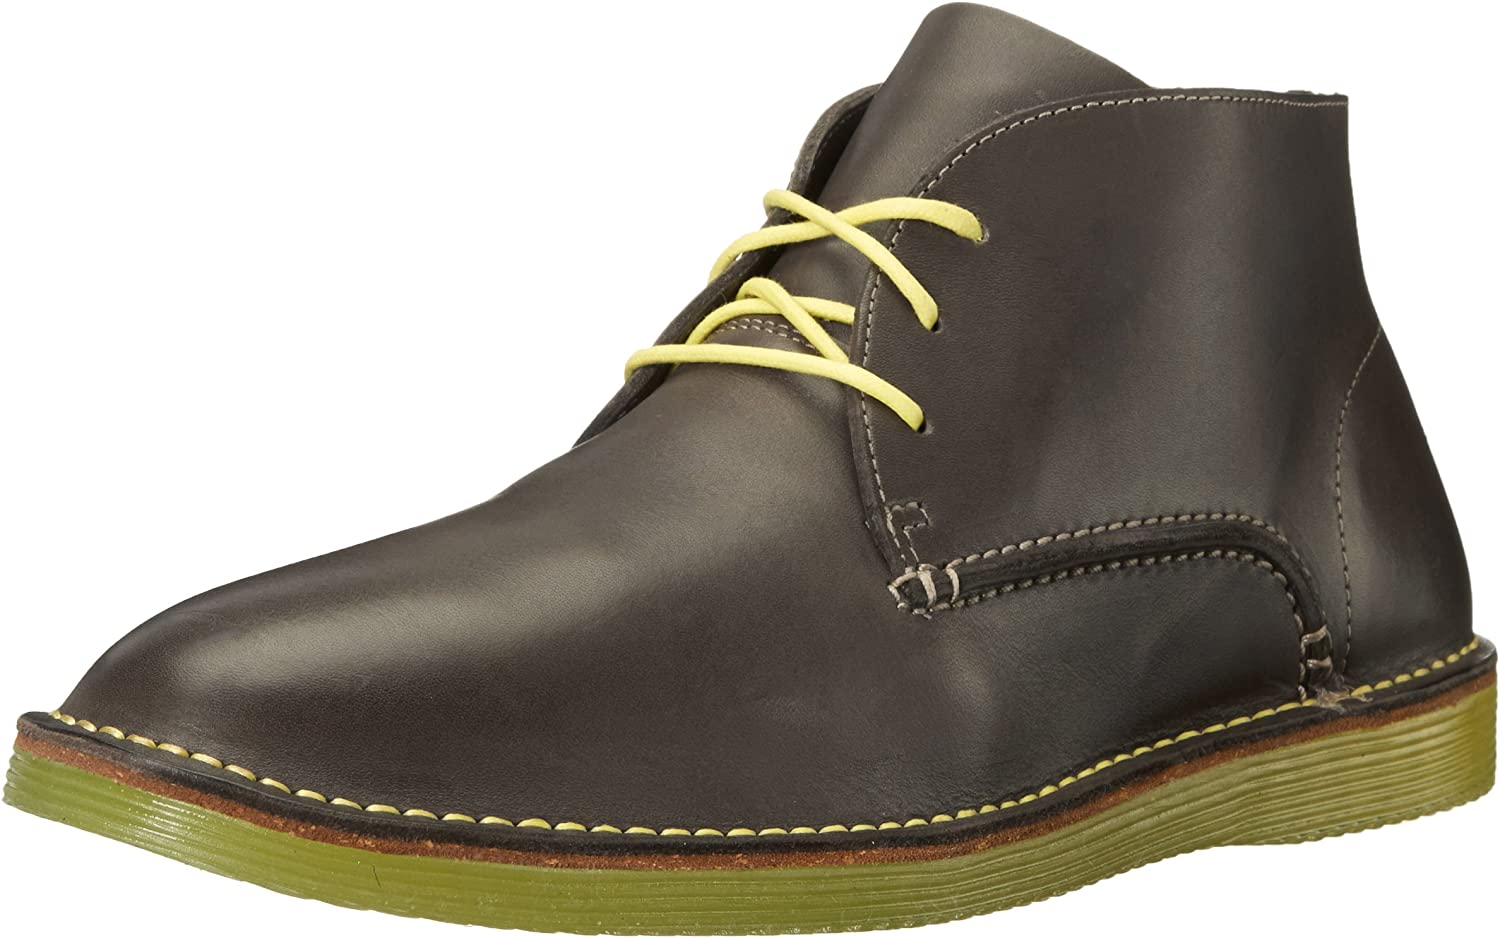 Clarks Men's Darning Hi Chukka Boot